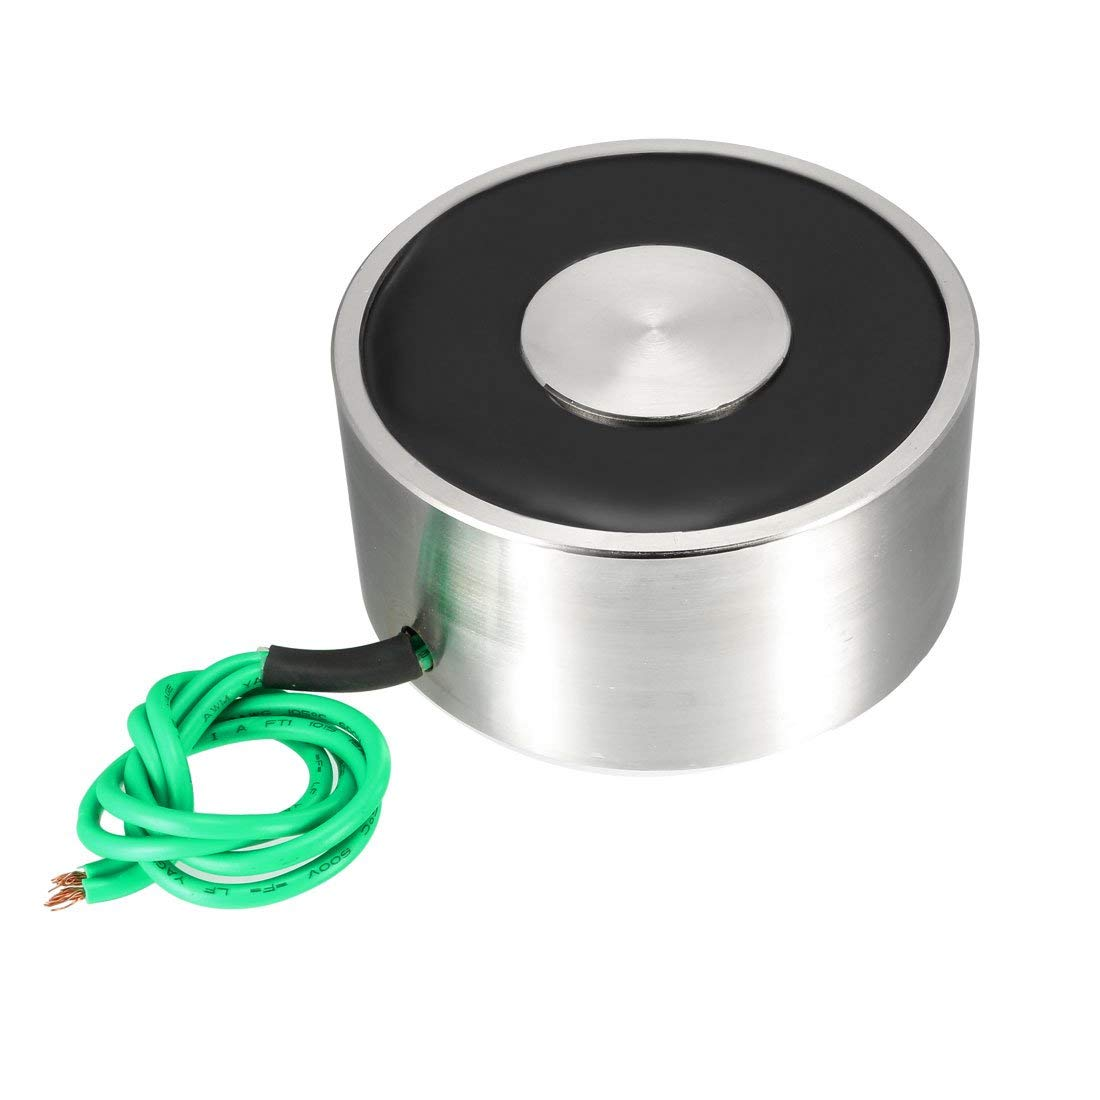 ZCHXD 80mm x 38mm DC12V 100KG Sucked Disc Solenoid Electric Lift Holding Electromagnet